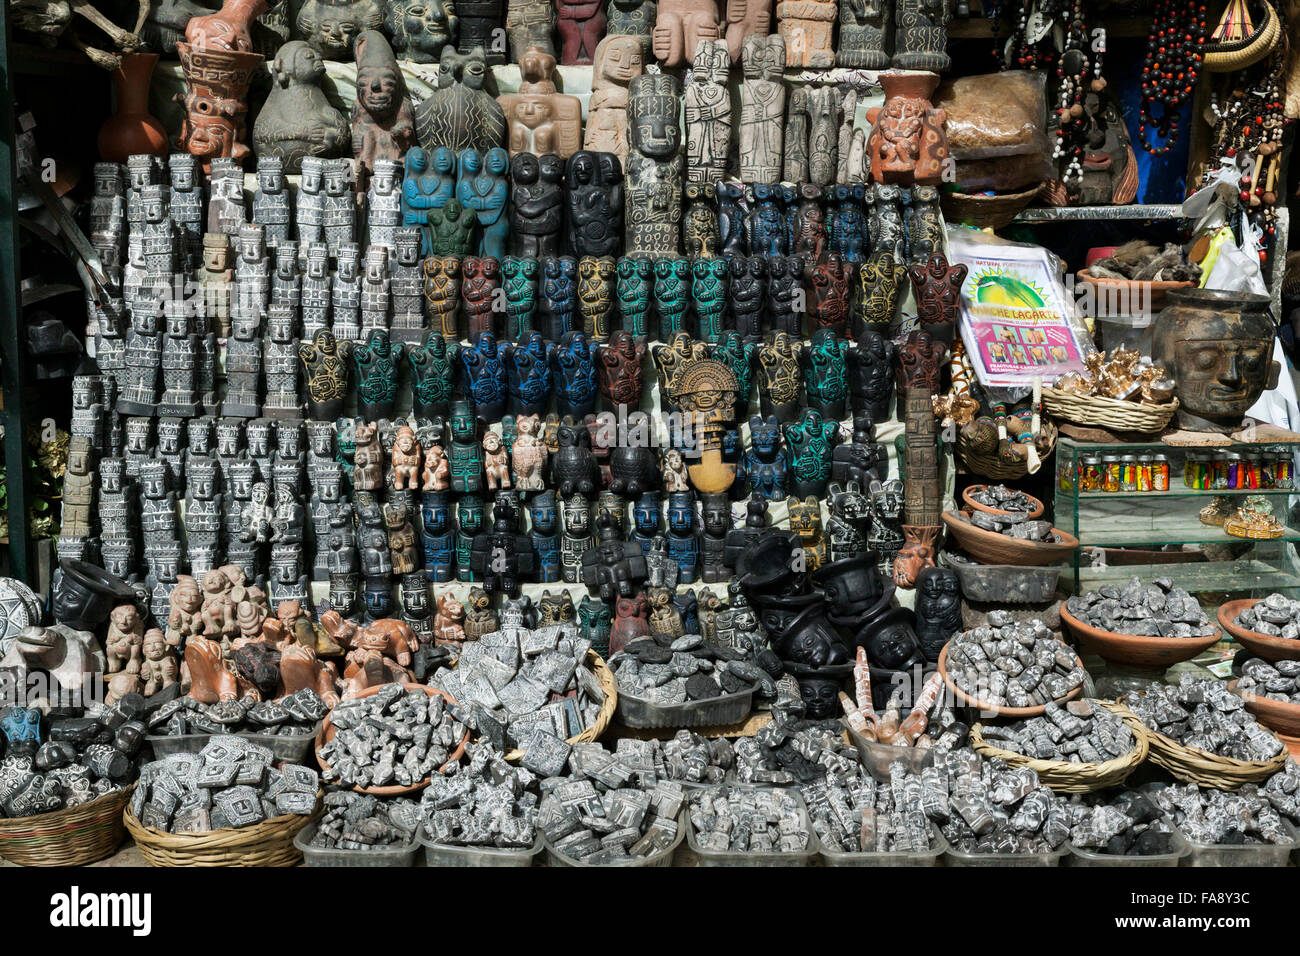 Witches Market In La Paz Bolivia South America Stock Photo Alamy